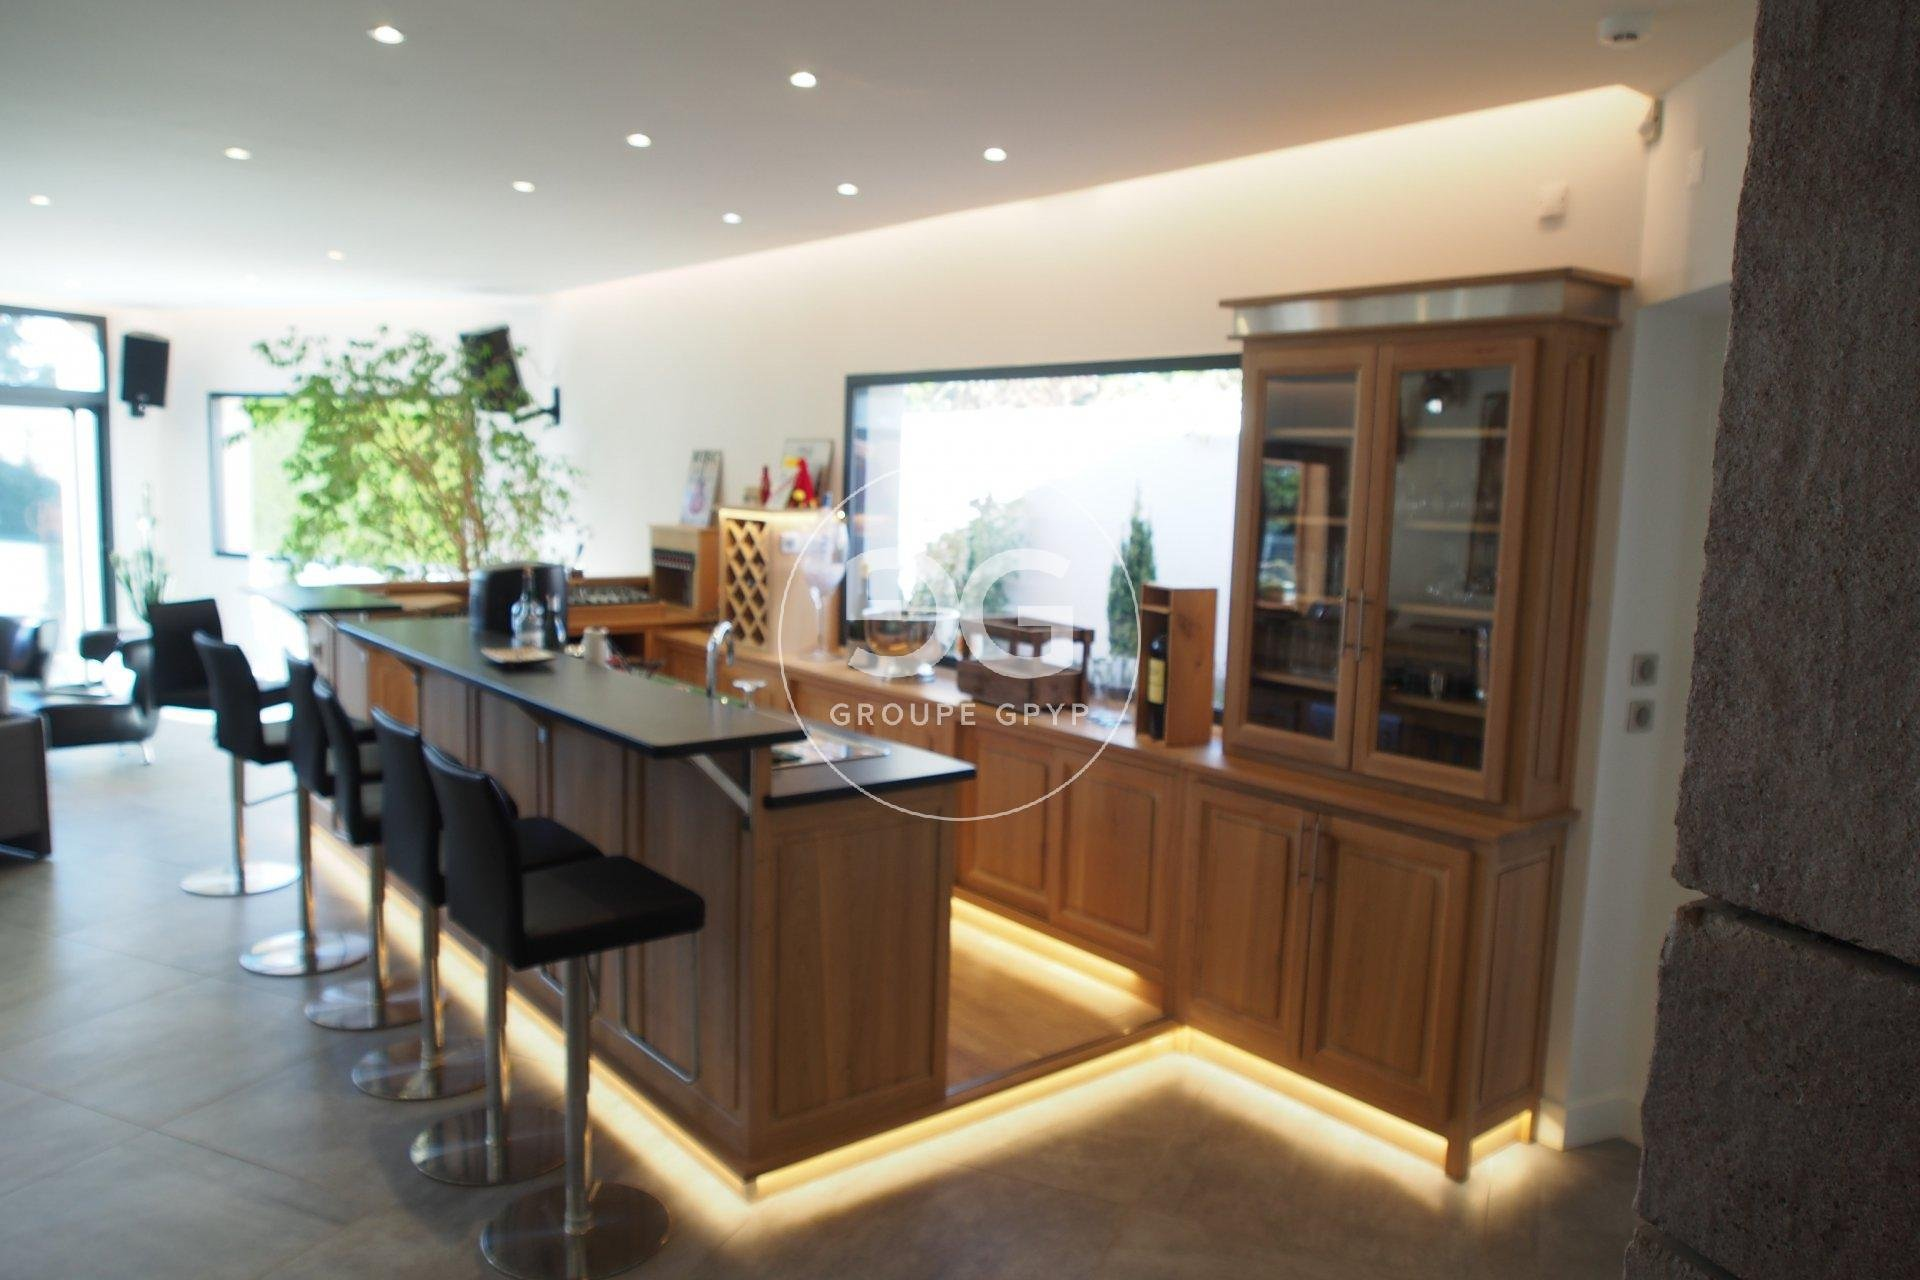 Natural light, kitchen bar, kitchen island